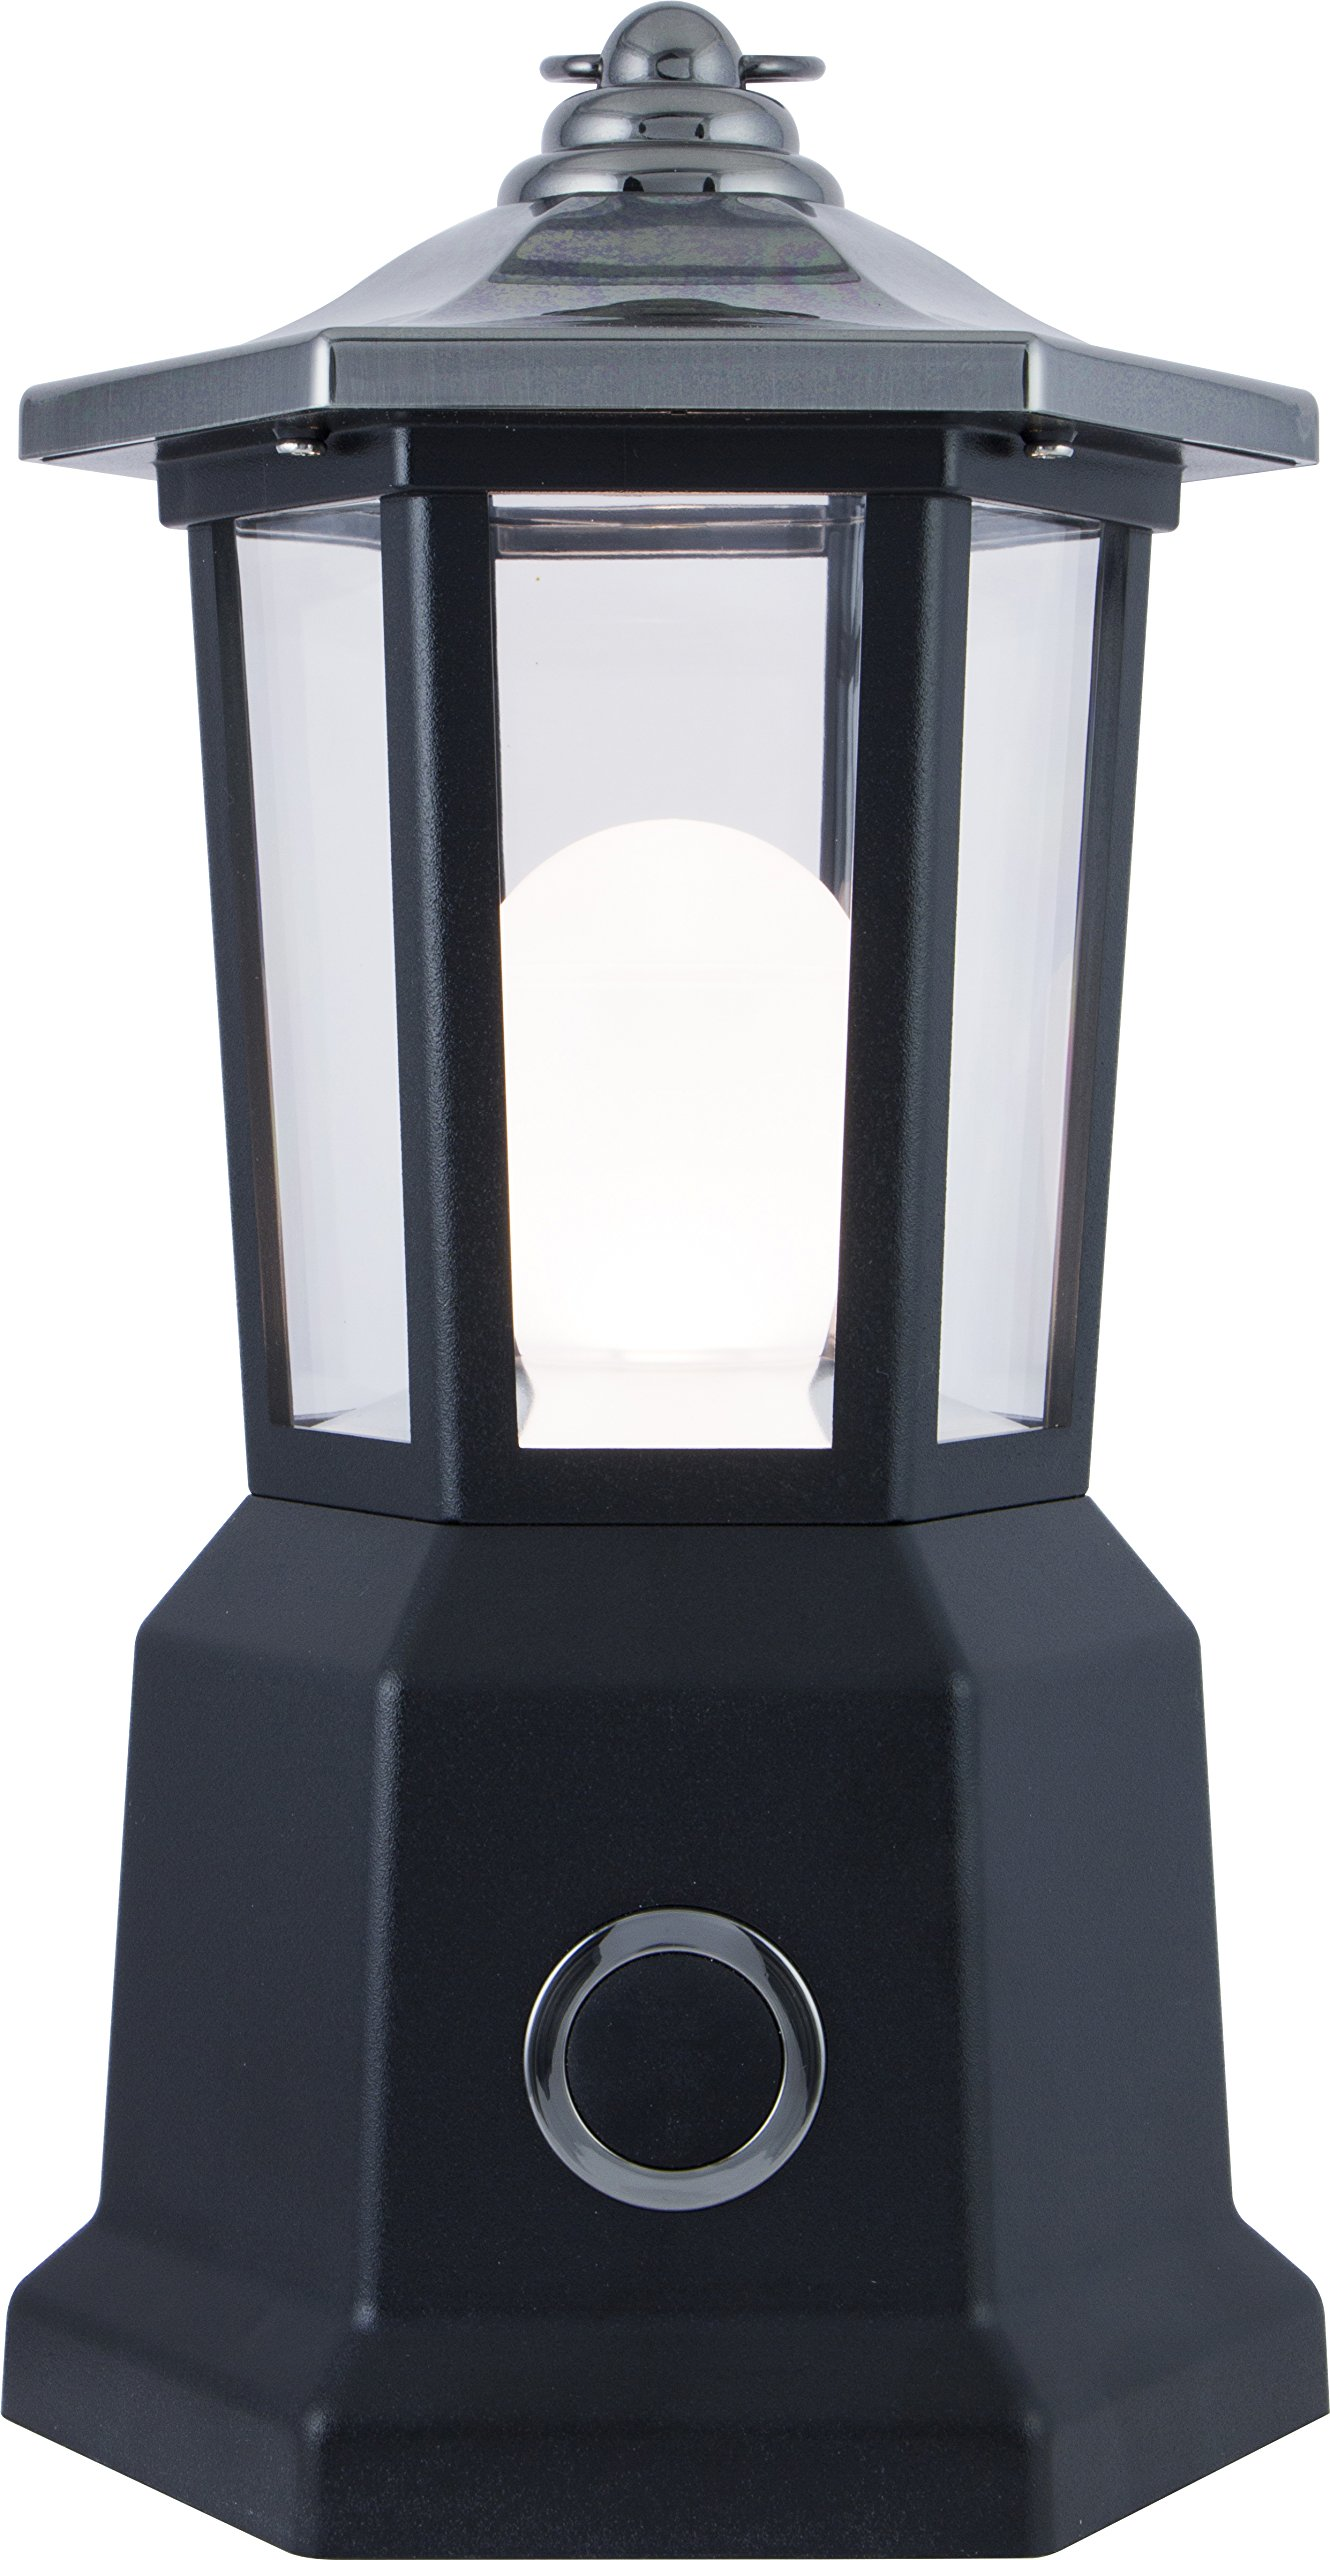 Enbrighten 11921 LED Patio Carriage Lantern, Battery Operated, Brushed Nickel Finish, Contemporary Design, 150 Lumens, Water Resistant